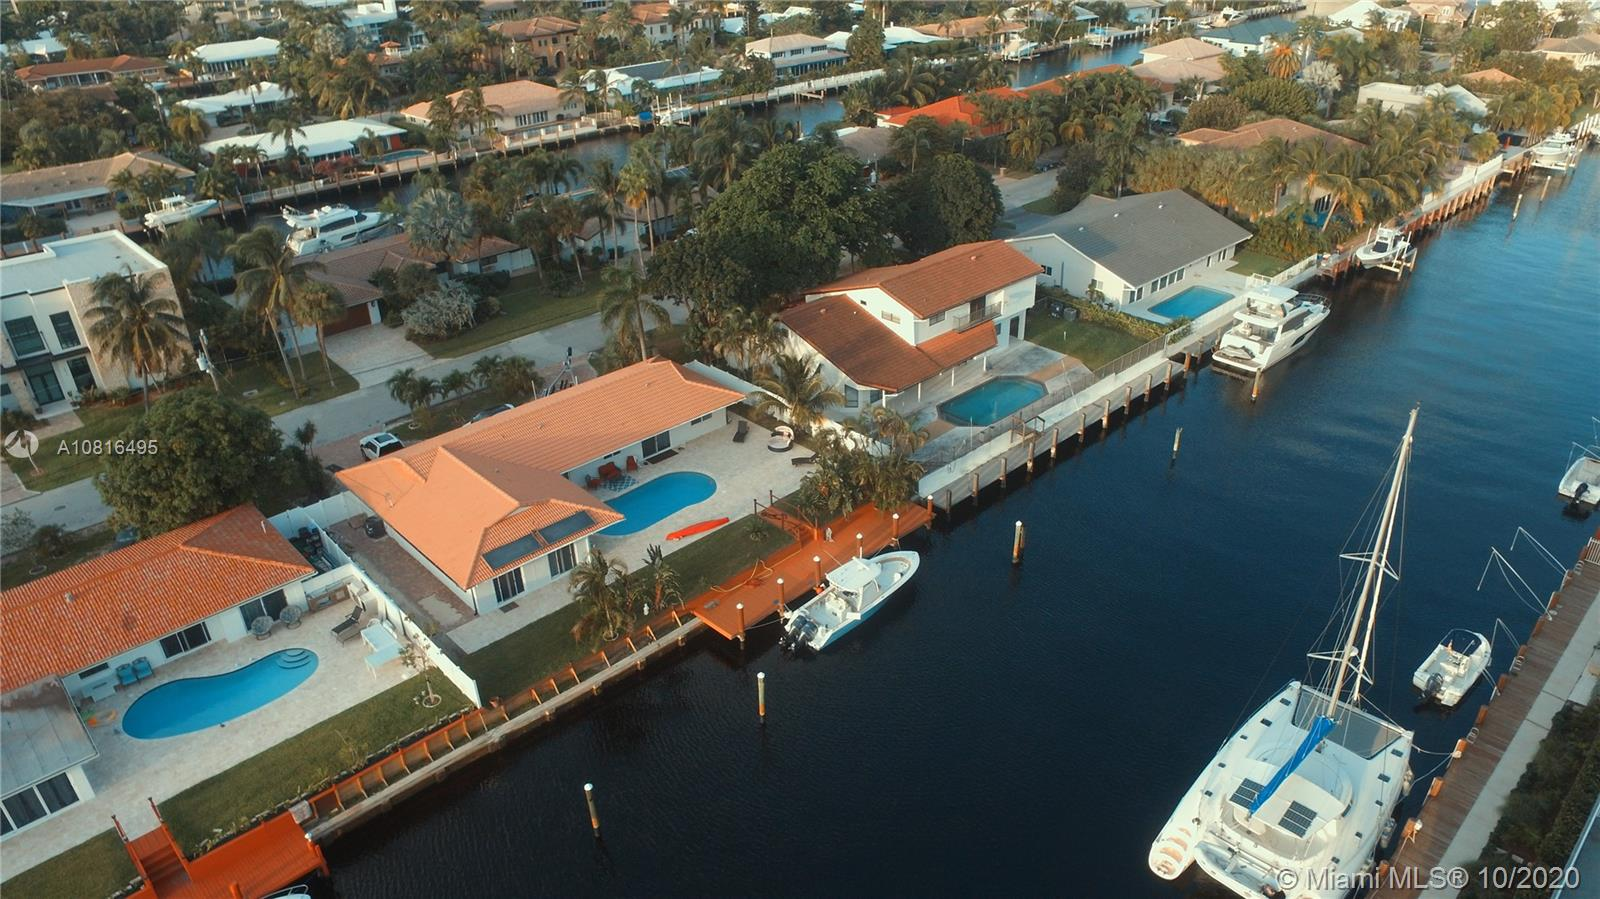 Attractively renovated waterfront home in Coral Ridge. 4 bedrooms 2 baths with split bedroom floor plan. House features new kitchen with quartz counter tops, stainless appliances, tiled floors; new bathrooms, new dock 80 ft dock with 100ft of water frontage. Park your boat by your house and live a dream. No fixed bridges, ocean access. Many restaurants near by. Excellent infrastructure of the area with walking distance to the ocean, mall, restaurants and shops. Excellent location. 